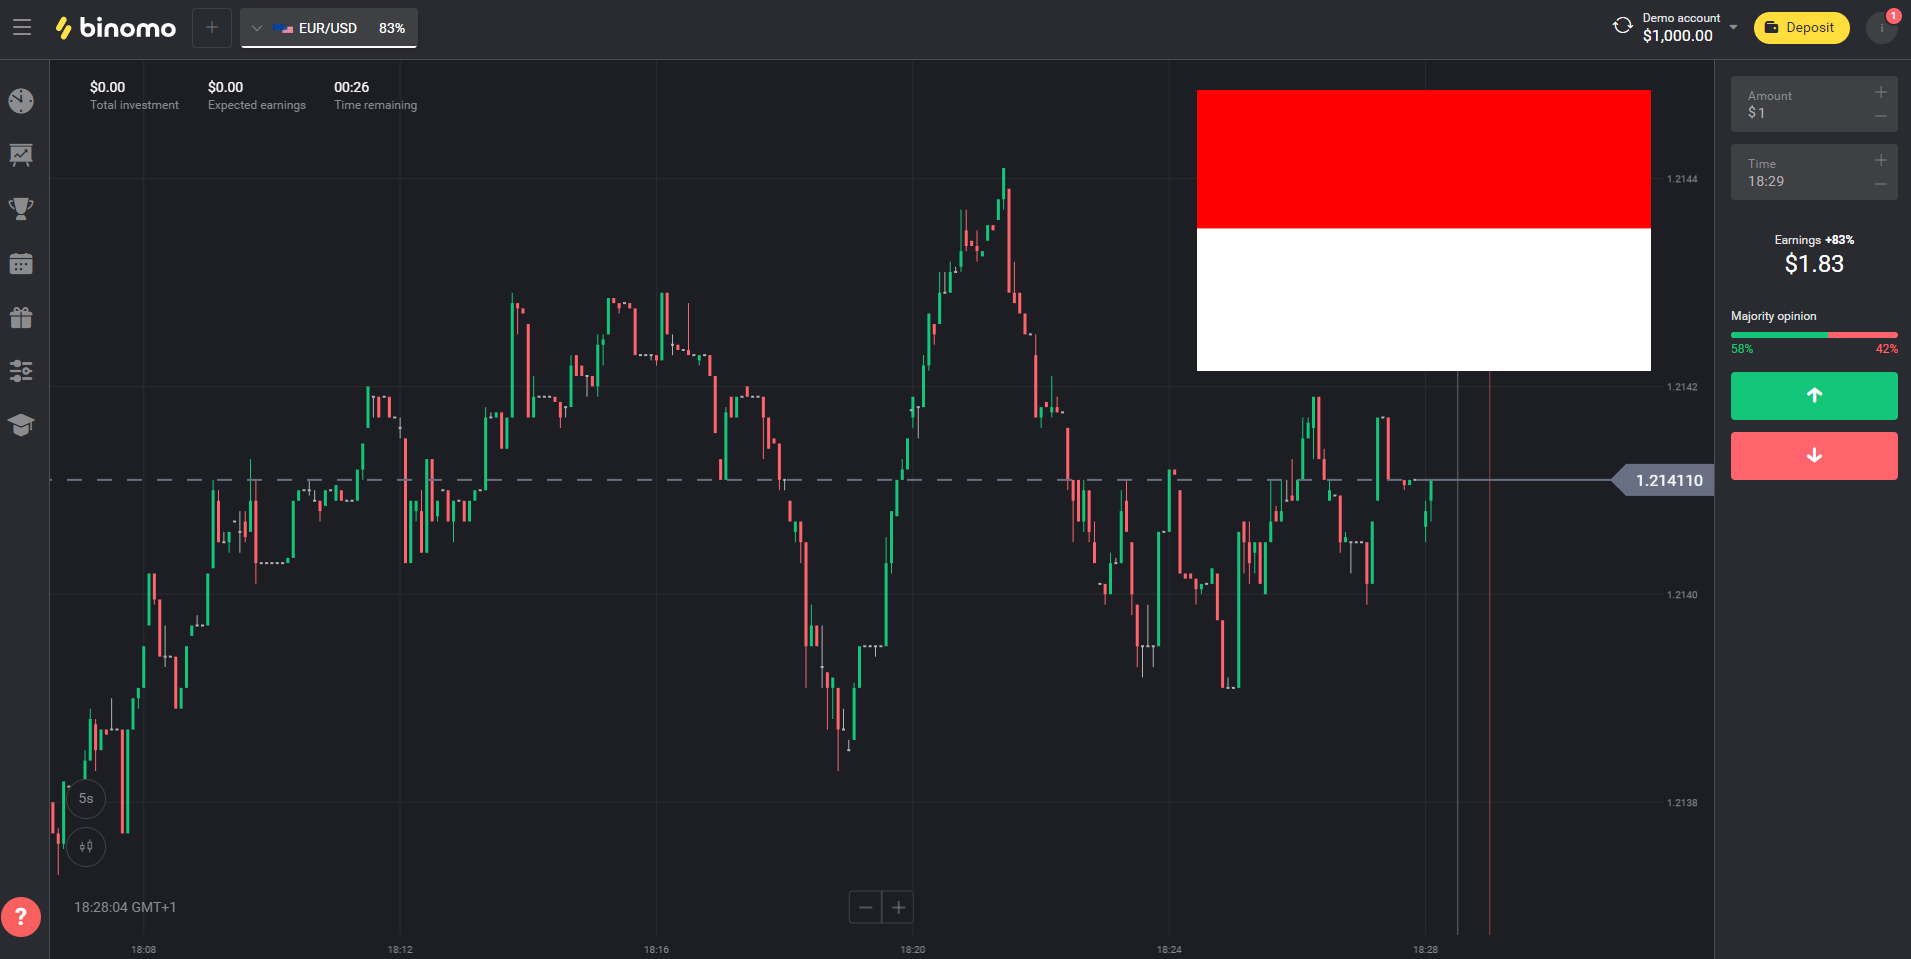 Binomo trading platform in Indonesia